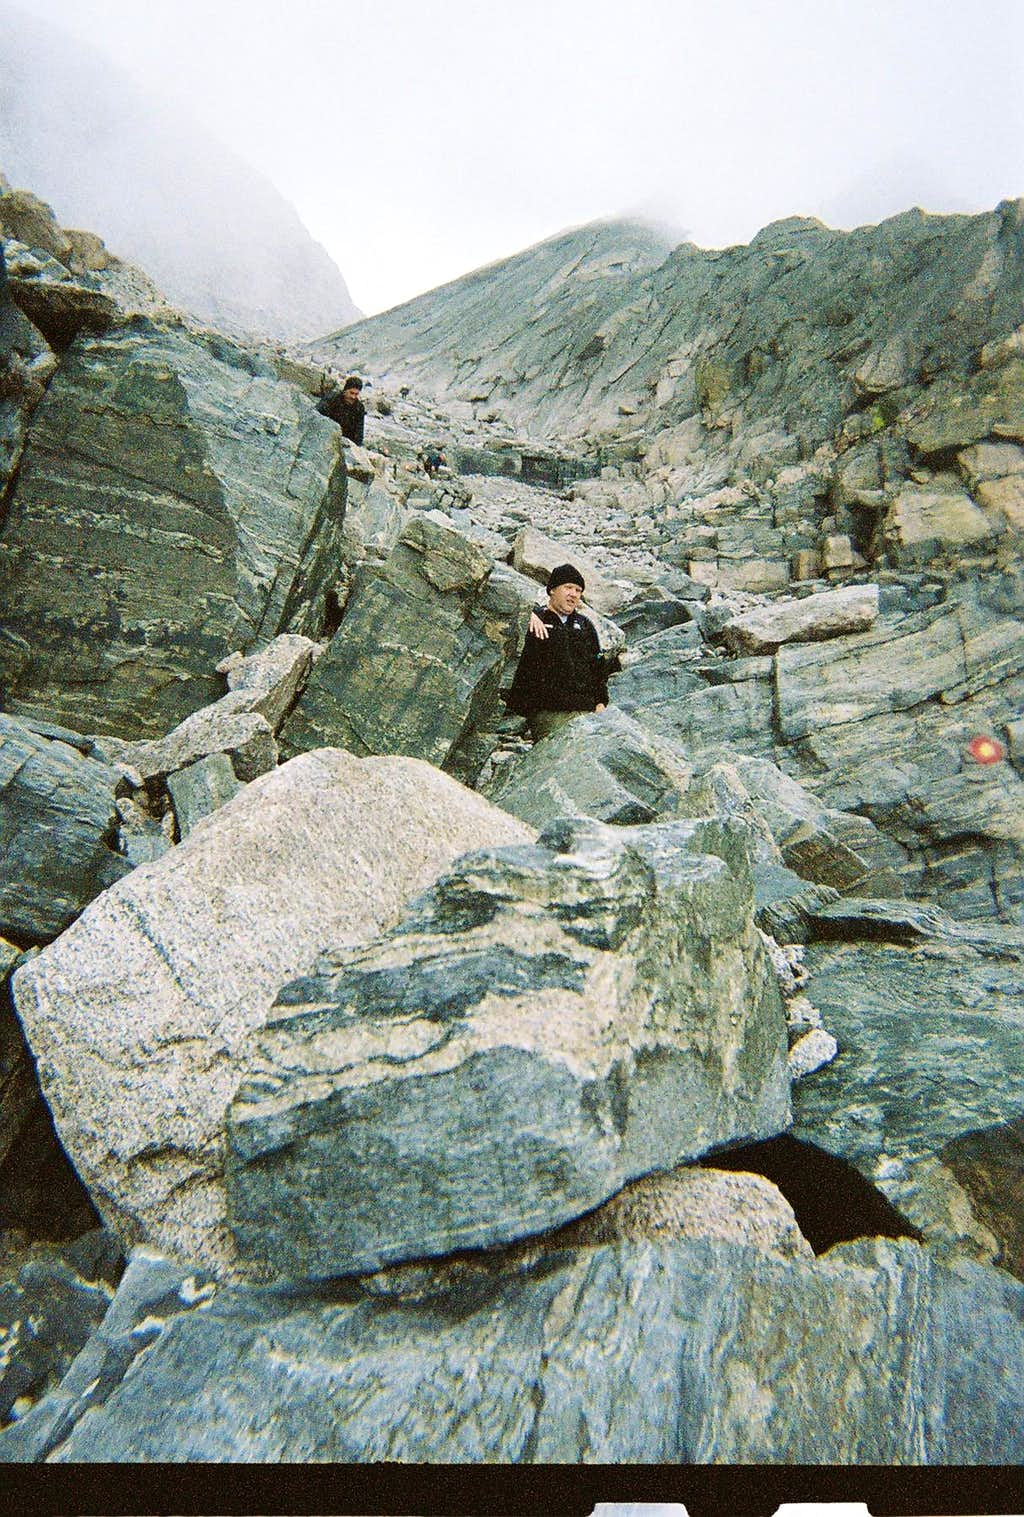 Longs Peak-The Decsent-K navigating the rough terrain near ...